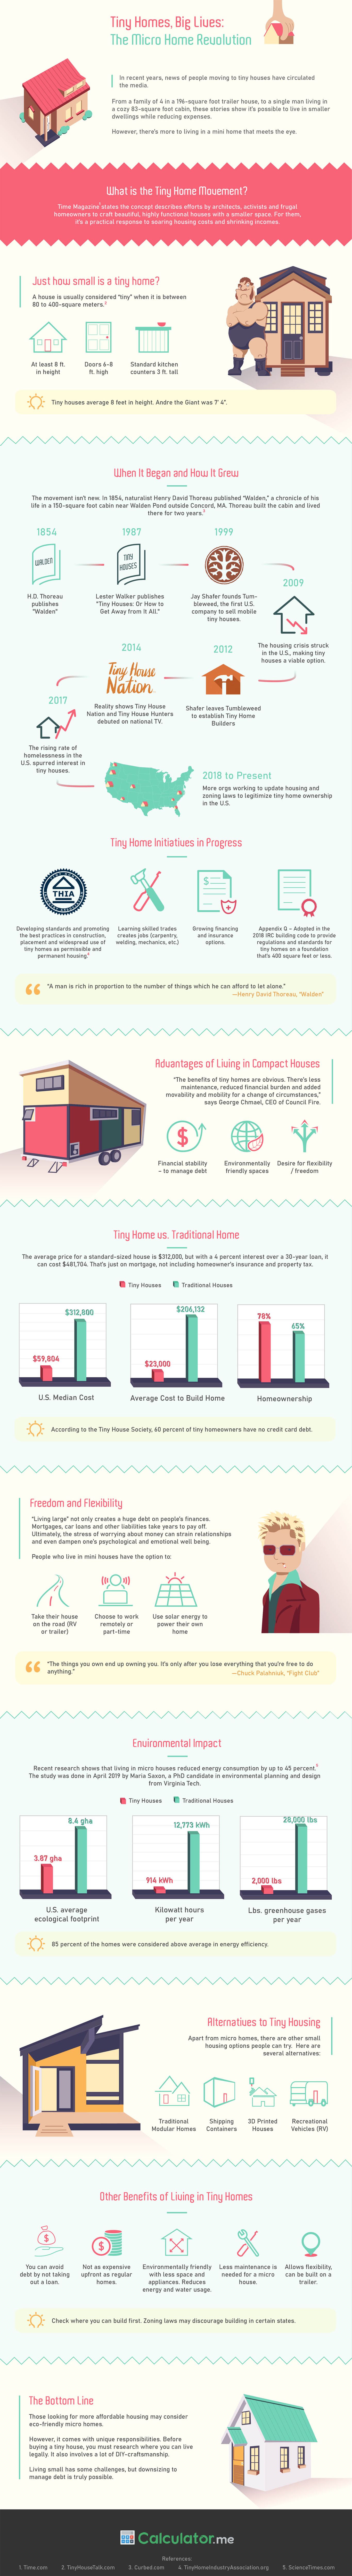 A Guide to Understanding the Tiny Homes Movement